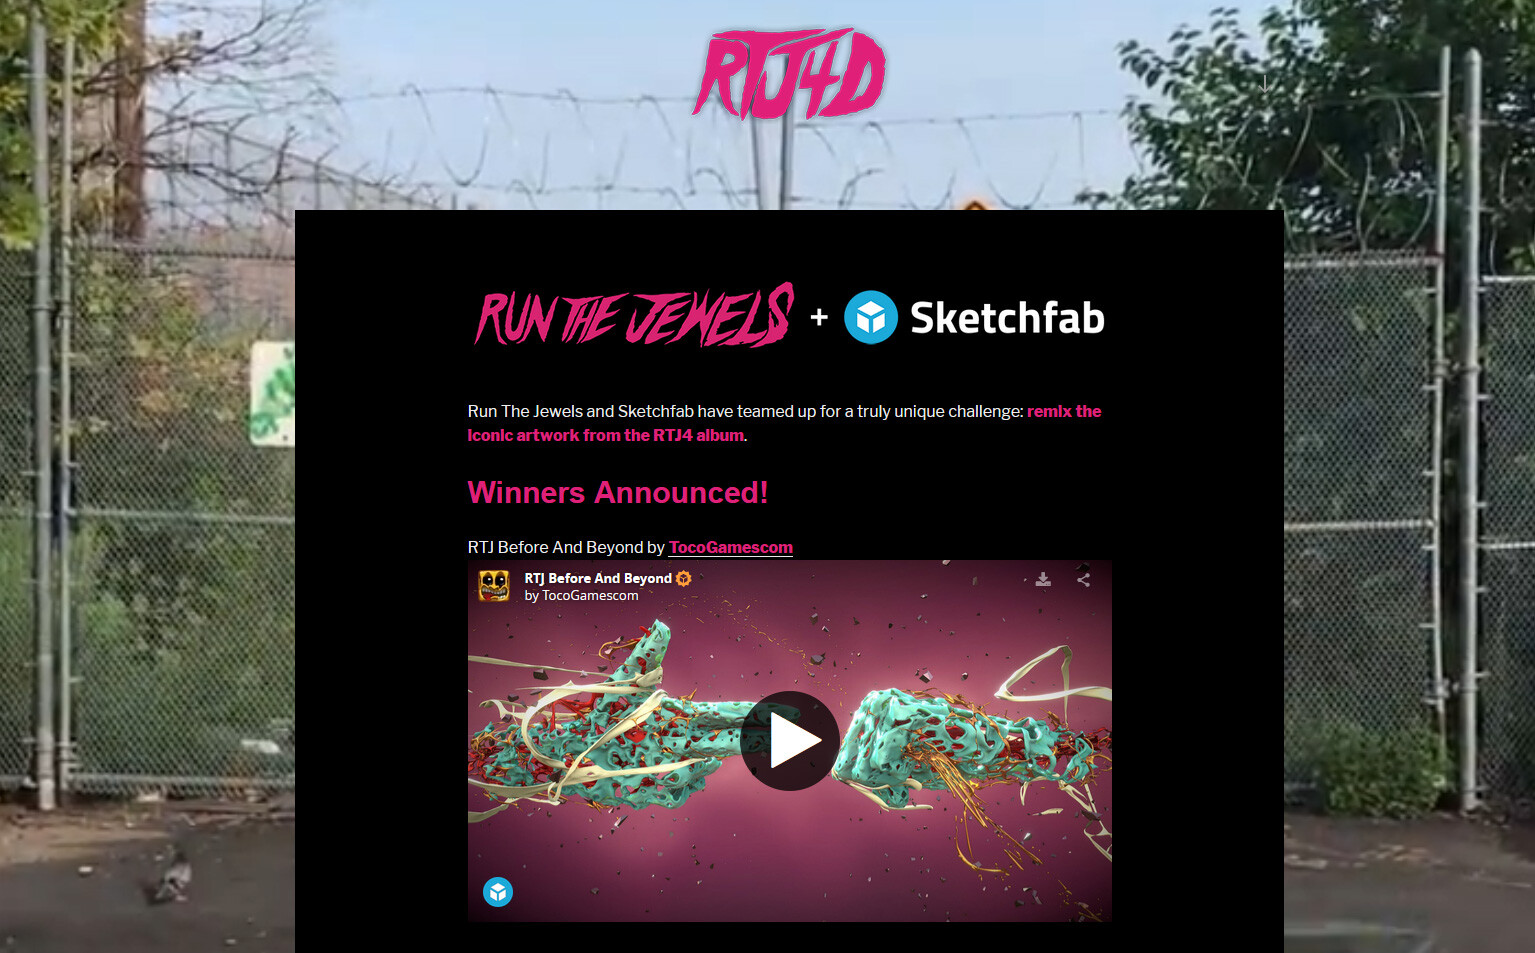 Winner in the Sketchfab Run The Jewels competition: https://sketchfab.com/blogs/RTJ4D/